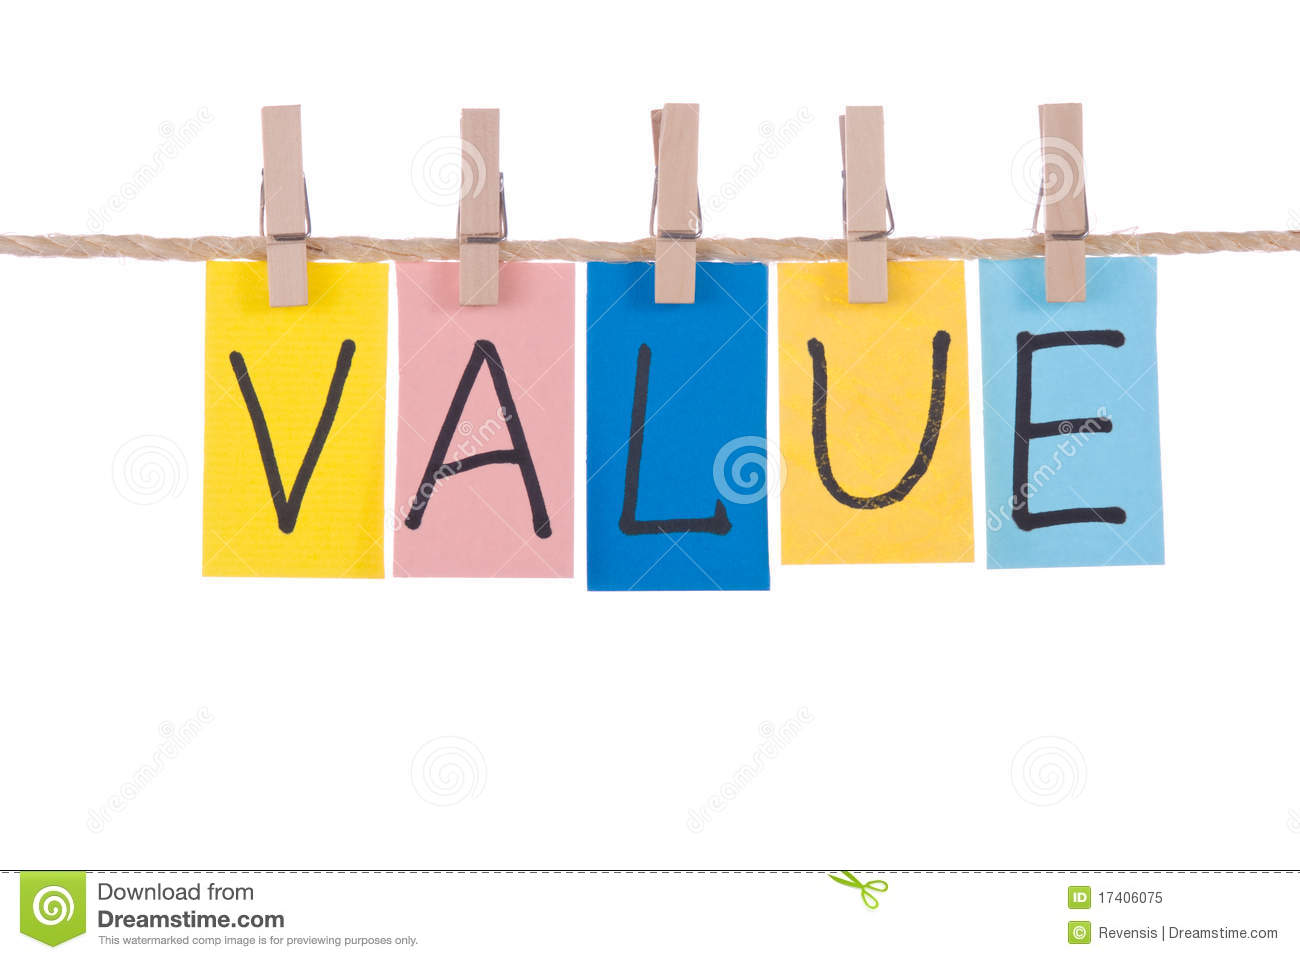 Value, Colorful words